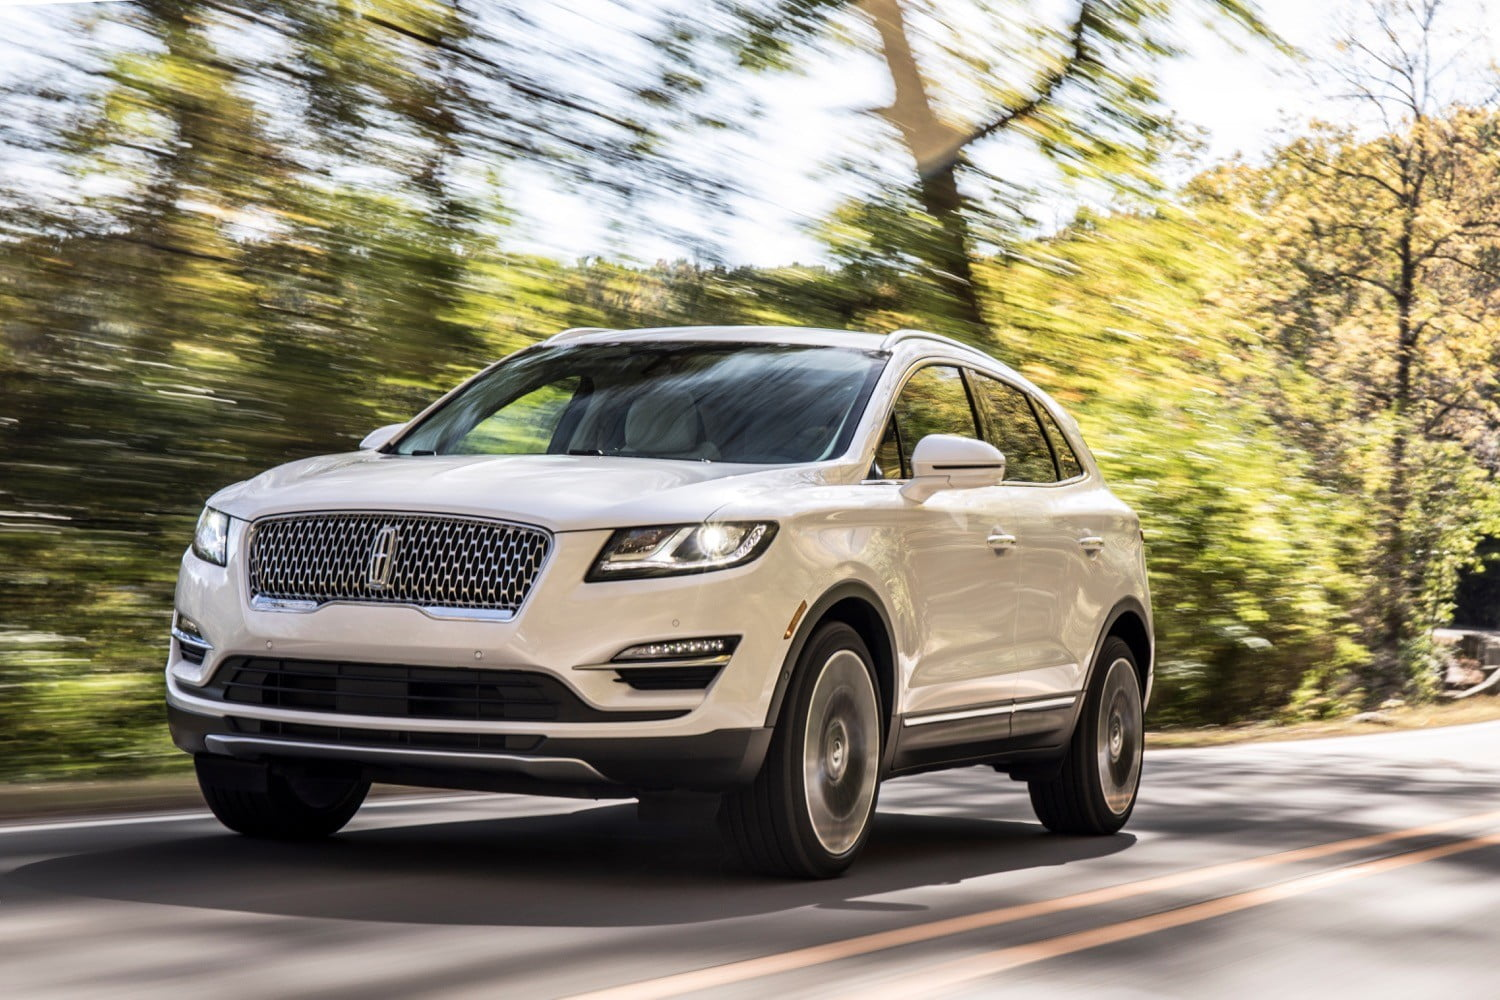 lincoln review reviews crossover your new mkc luxury car label bestride black